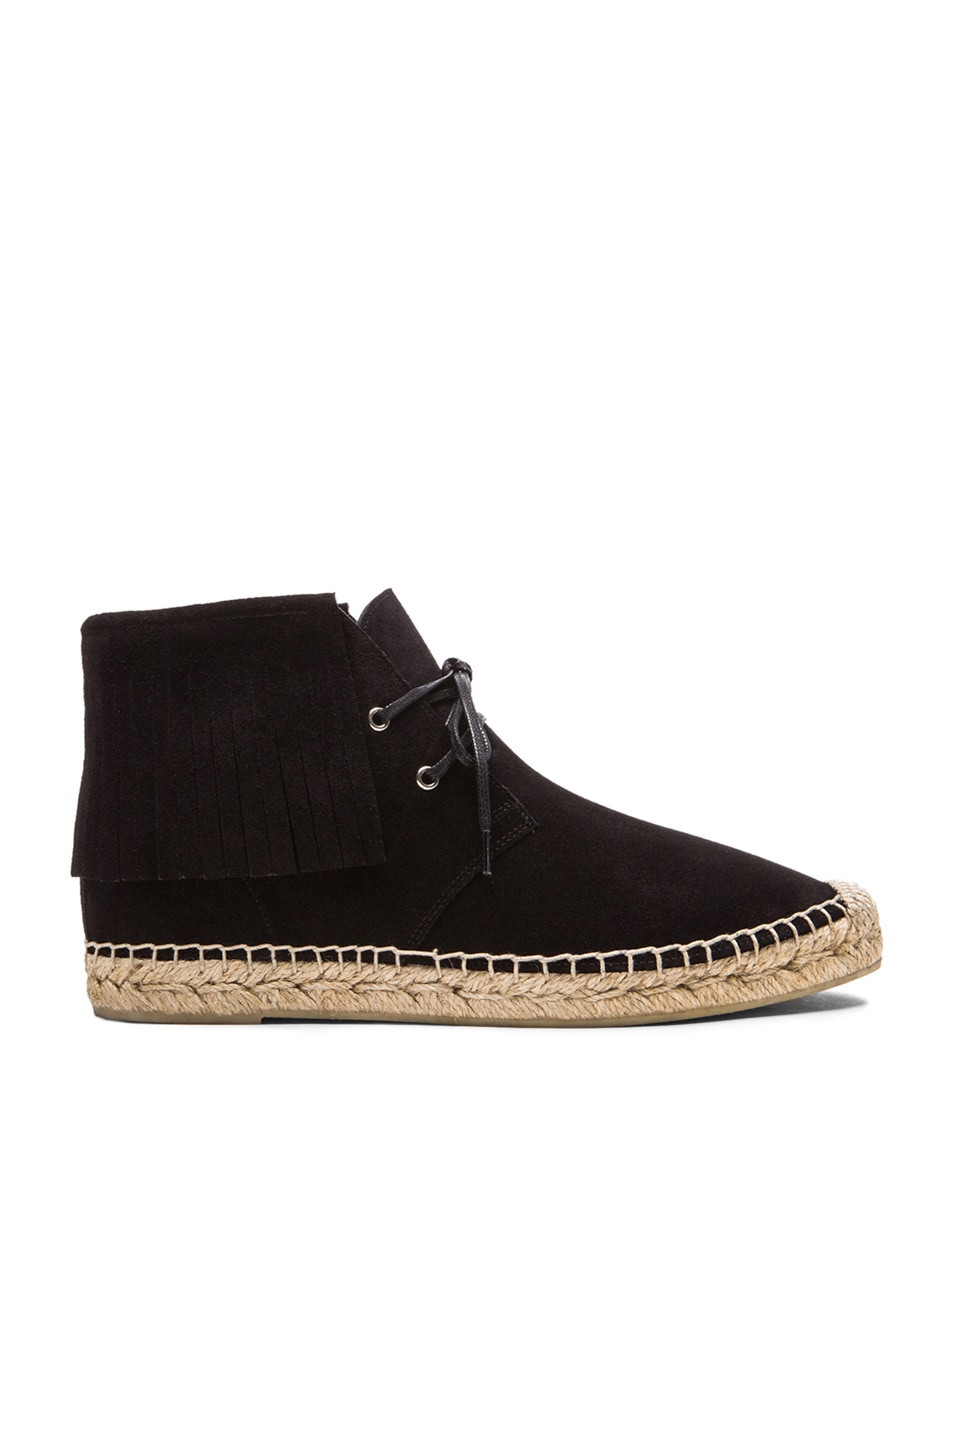 Image 1 of Saint Laurent Fringe Suede Espadrille Desert Boots in Black